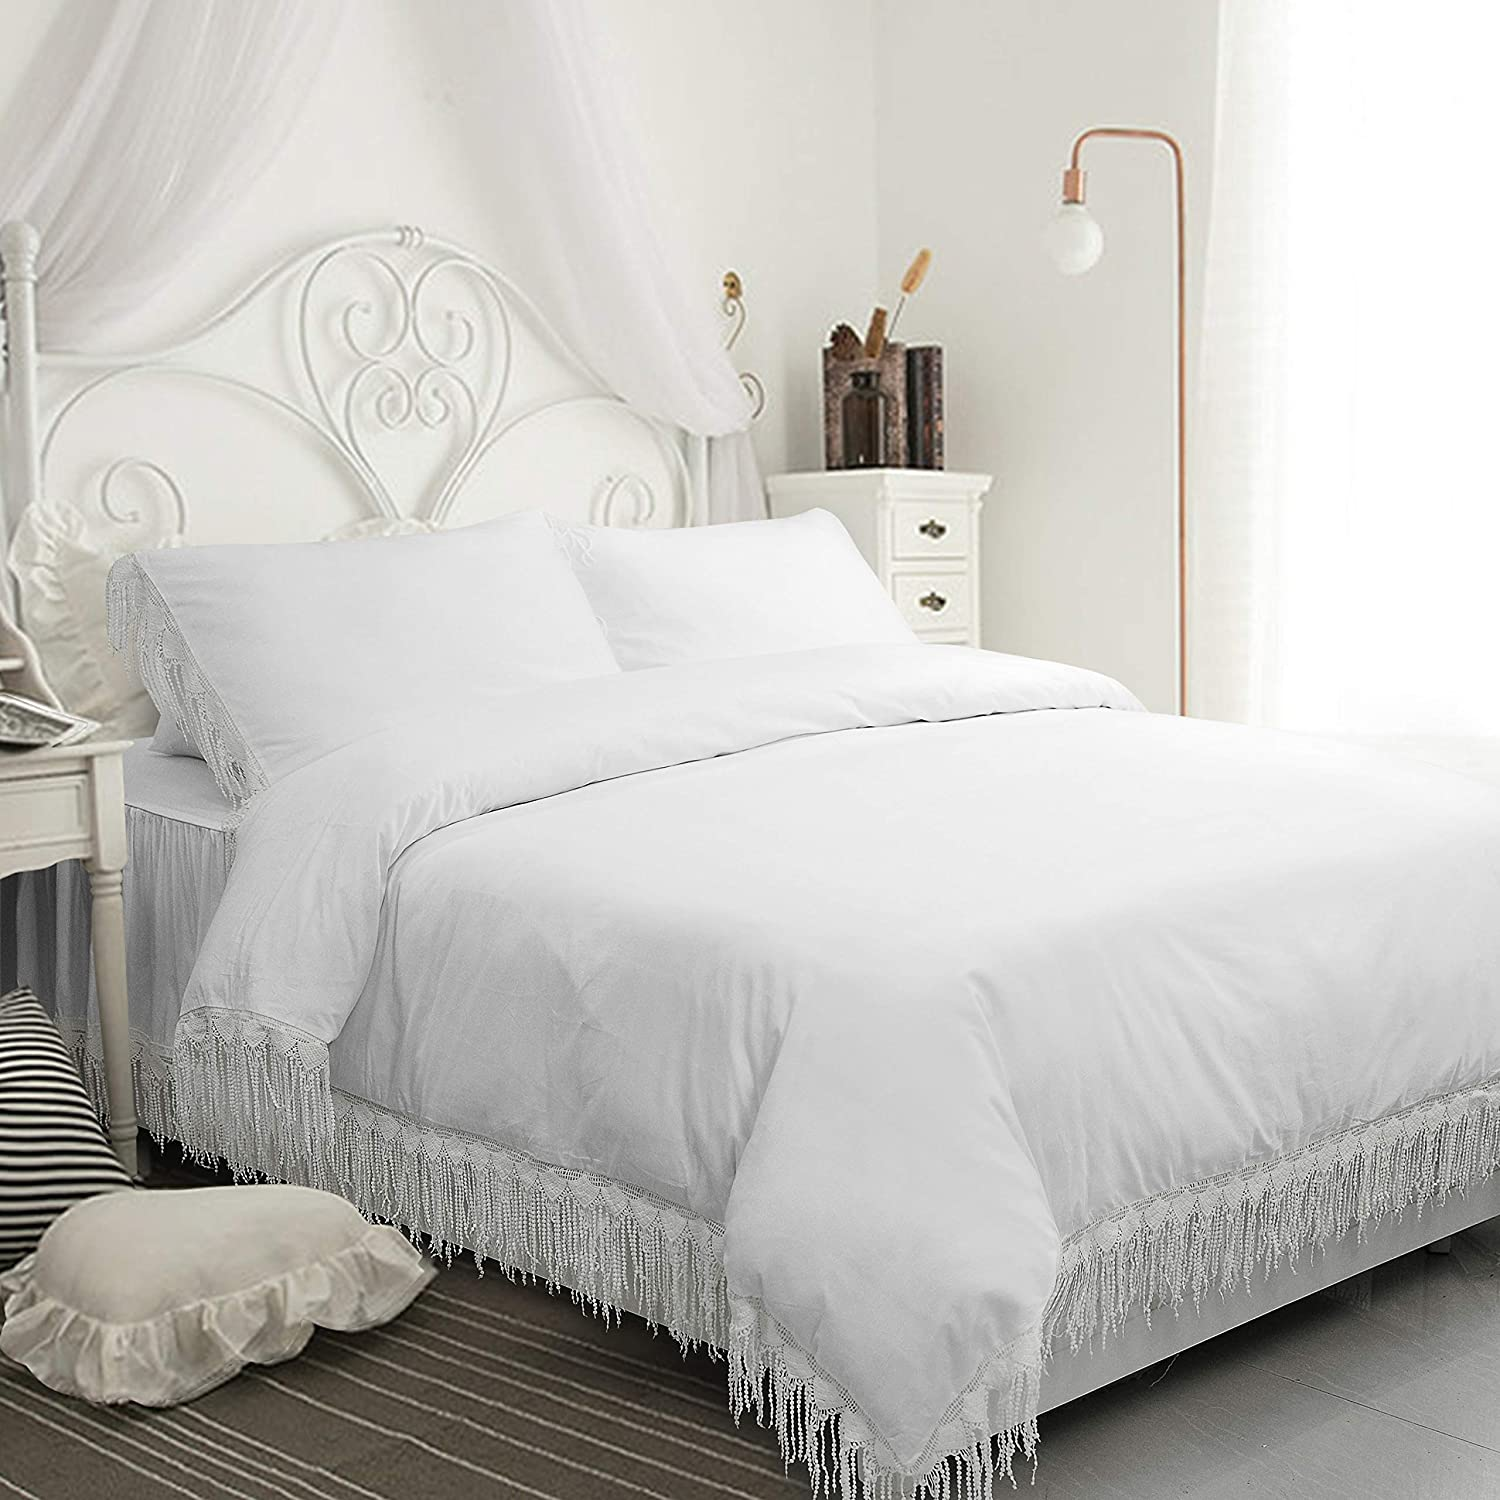 FADFAY White 25% OFF Boho Bedding Queen Size D Tassel Cotton Popular shop is the lowest price challenge 100% 600 TC